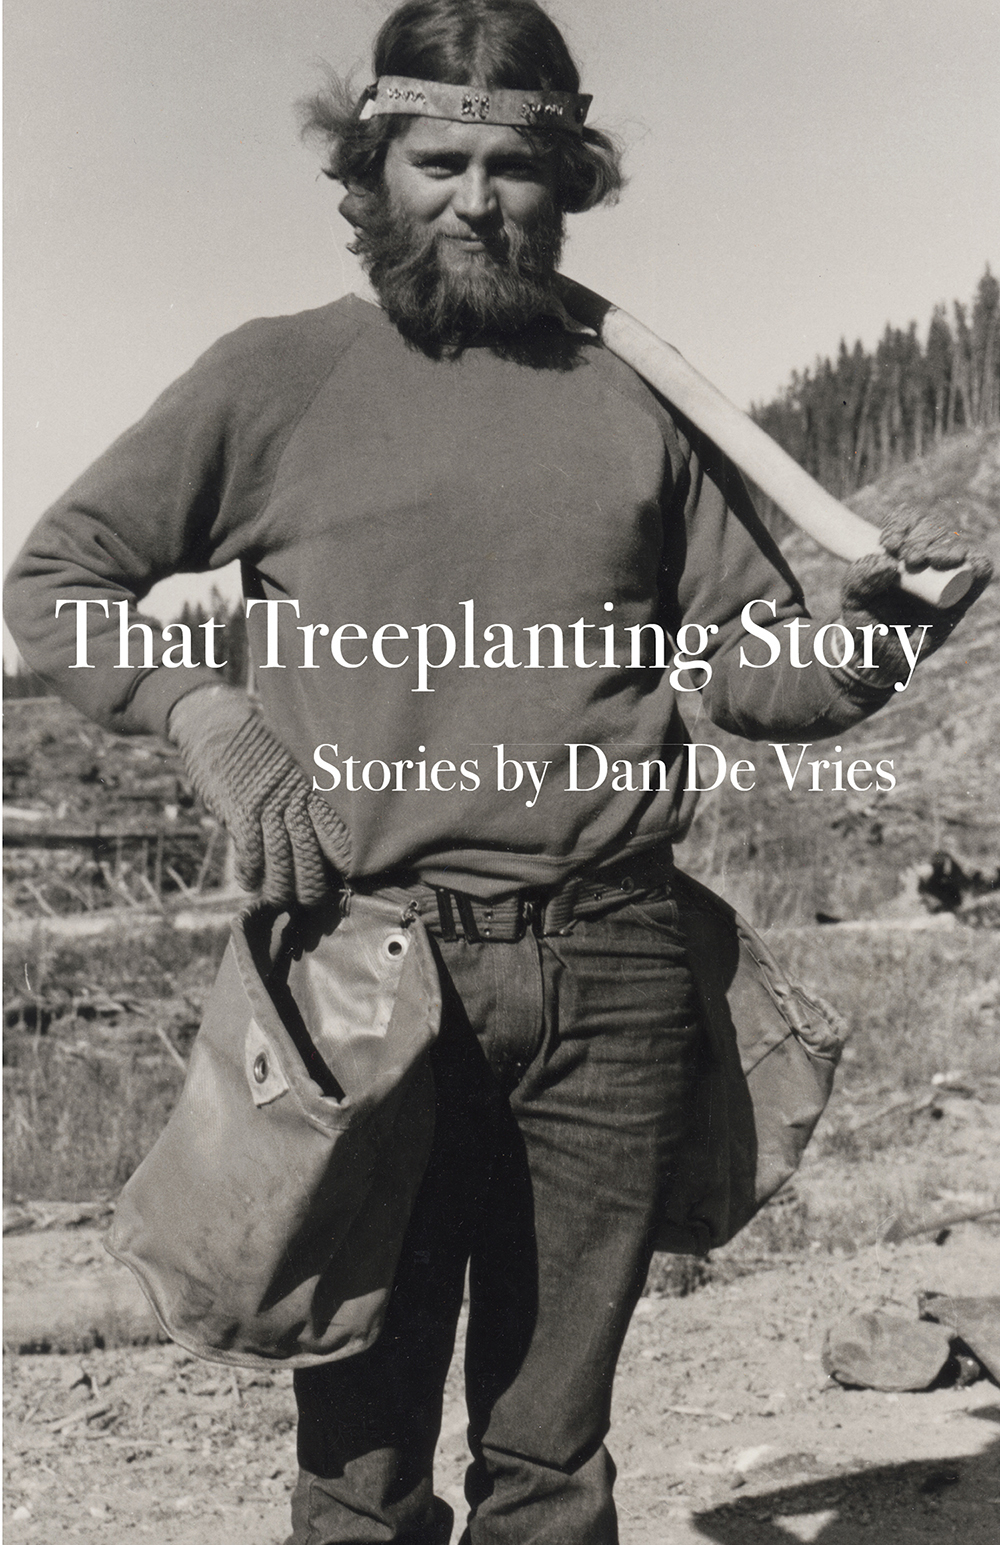 That Treeplanting Story